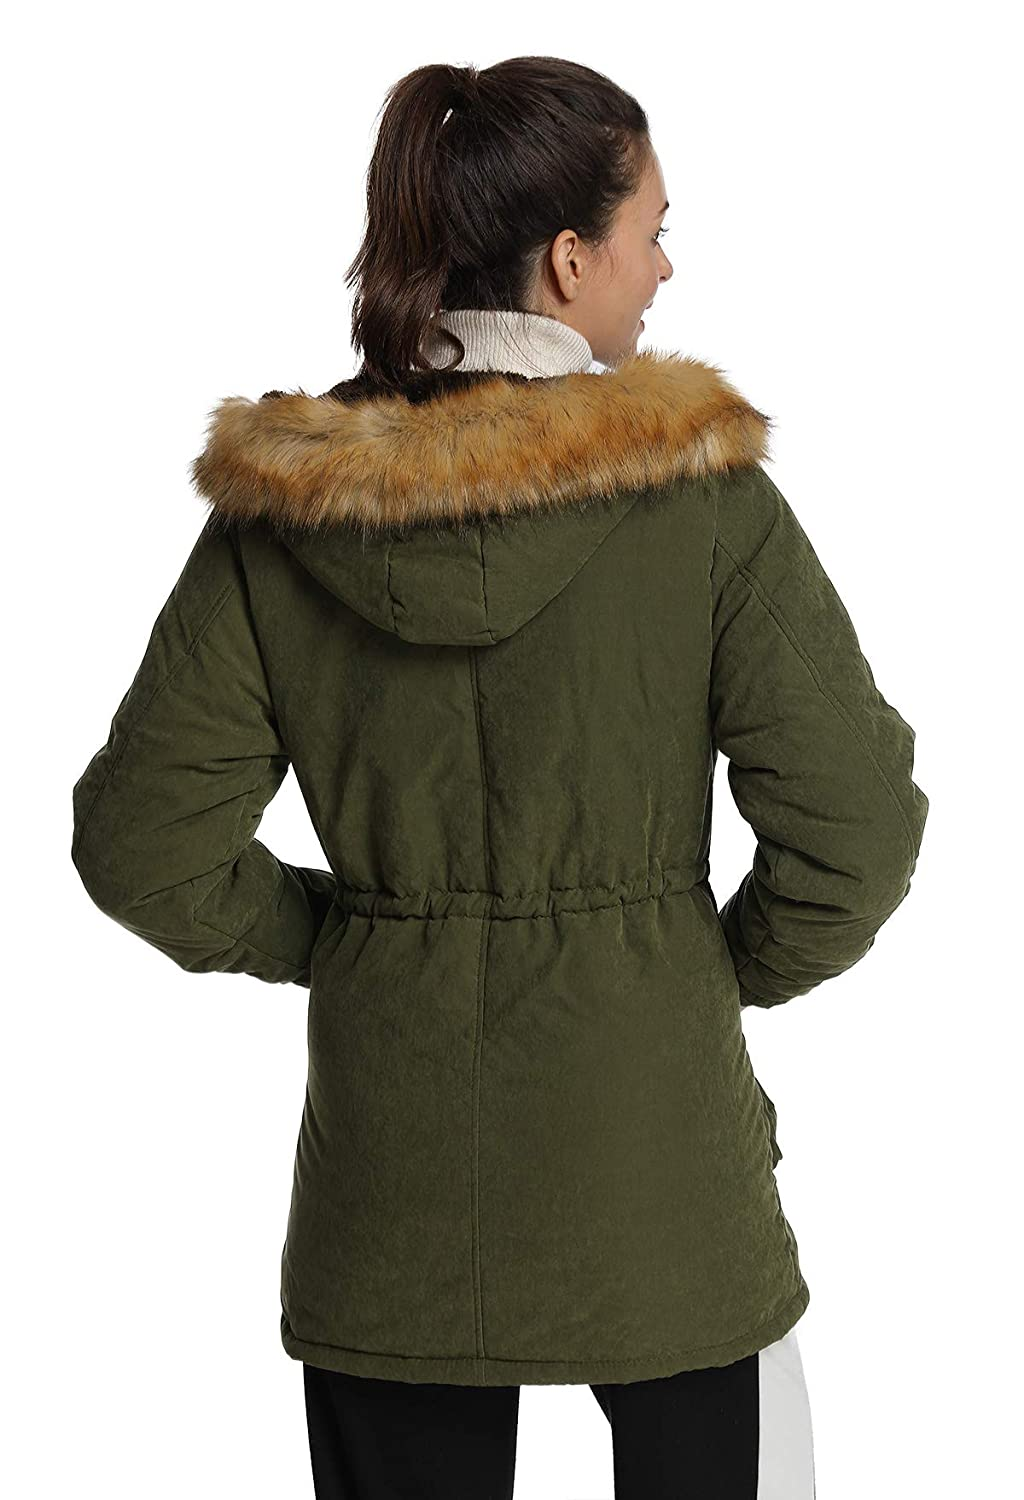 b62decfeae Amazon.com: 4HOW Womens Hooded Warm Parkas Jacket Lined Faux Fur Military  Winter Coat: Clothing